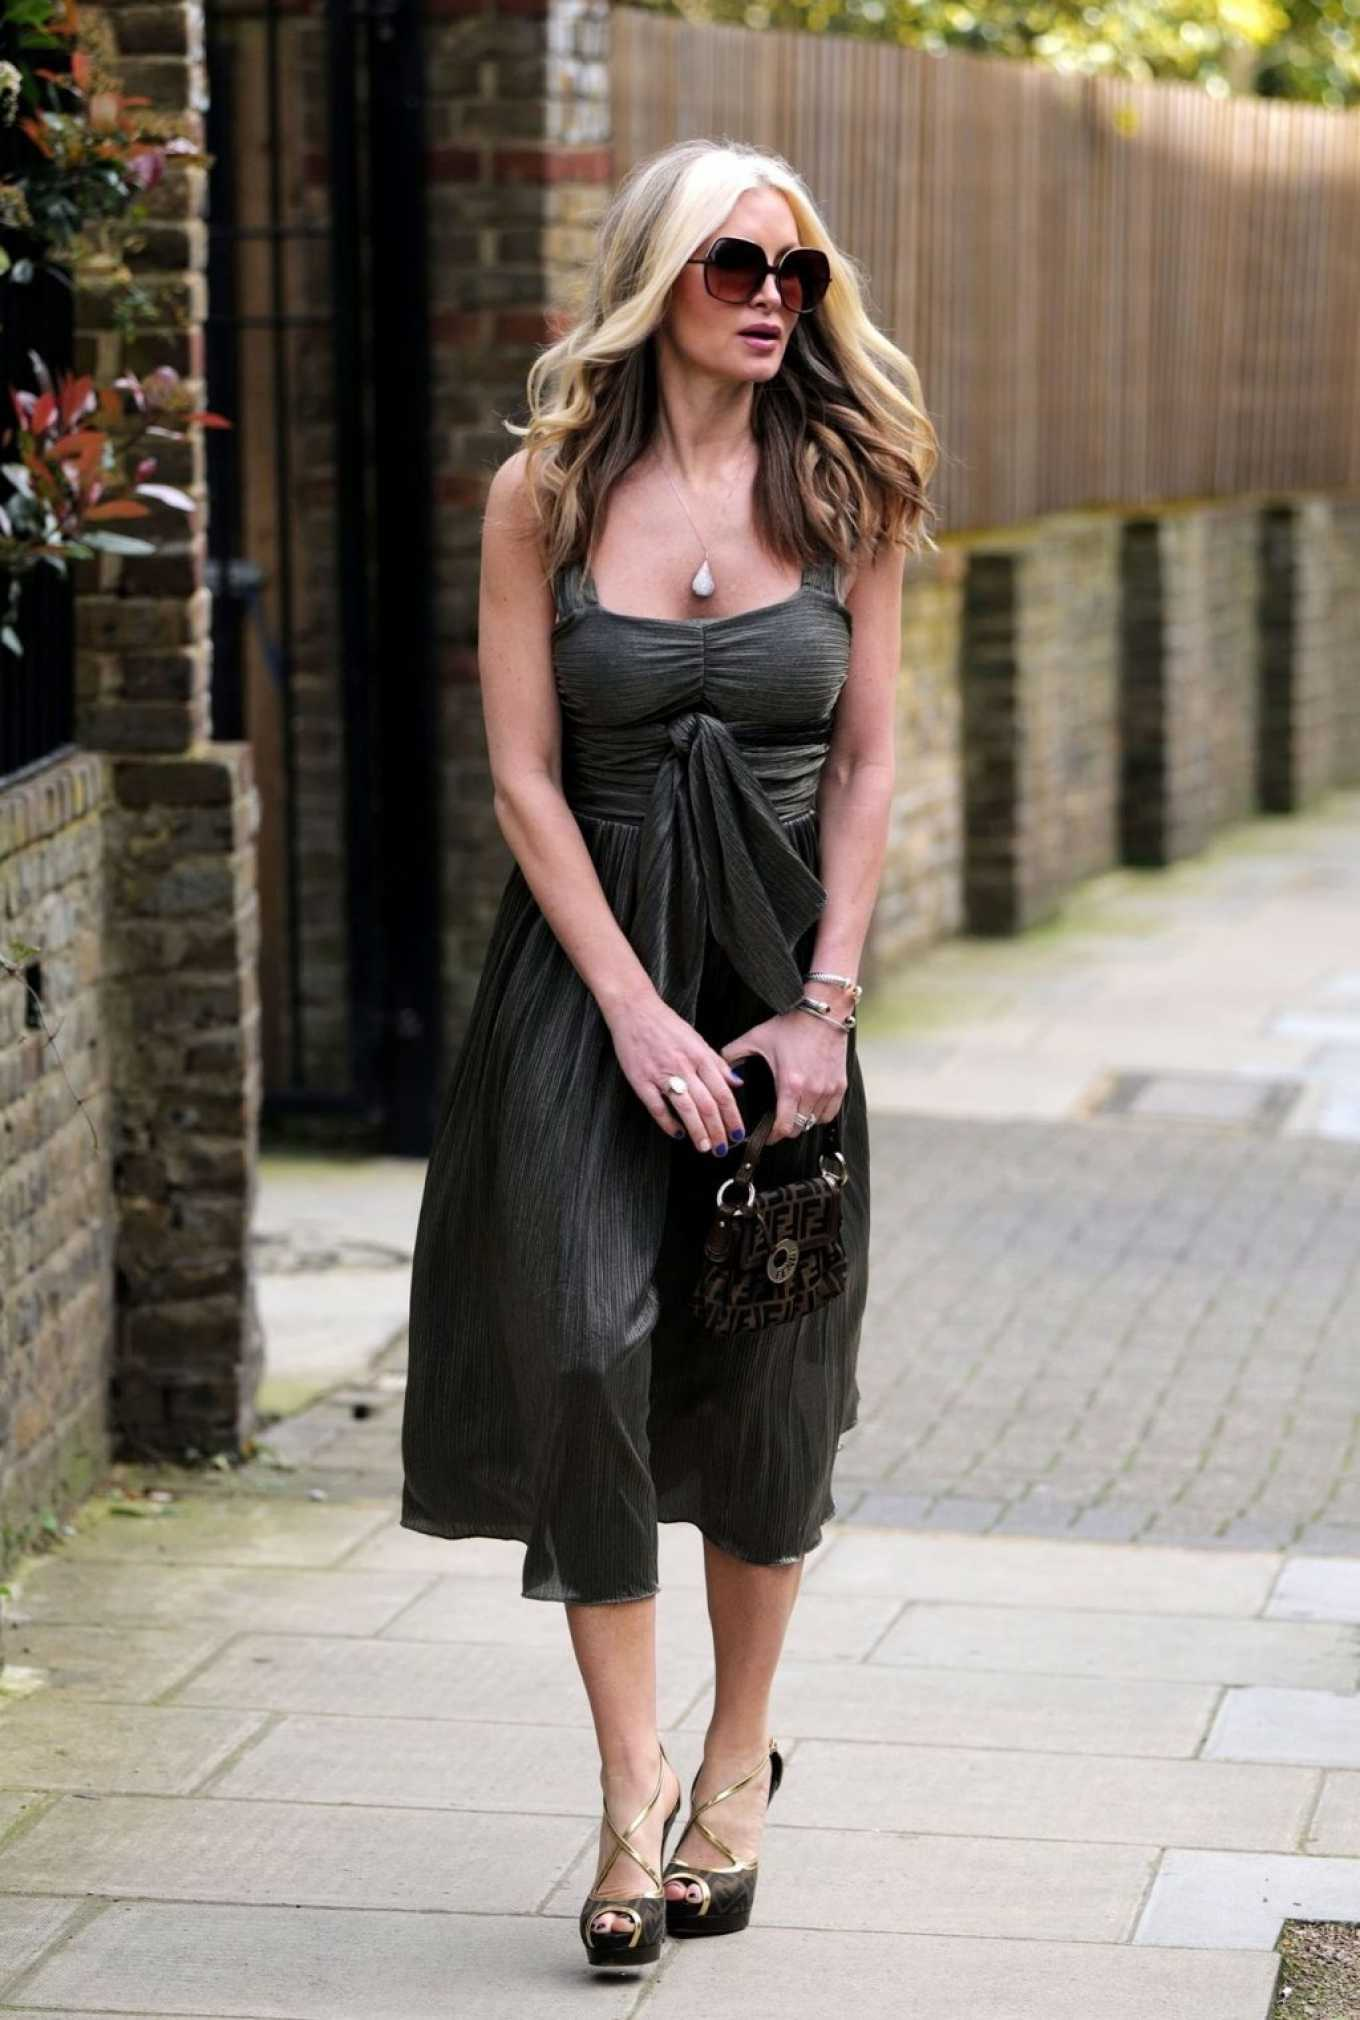 Caprice Bourret 2020 : Caprice Bourret – Out in London-02